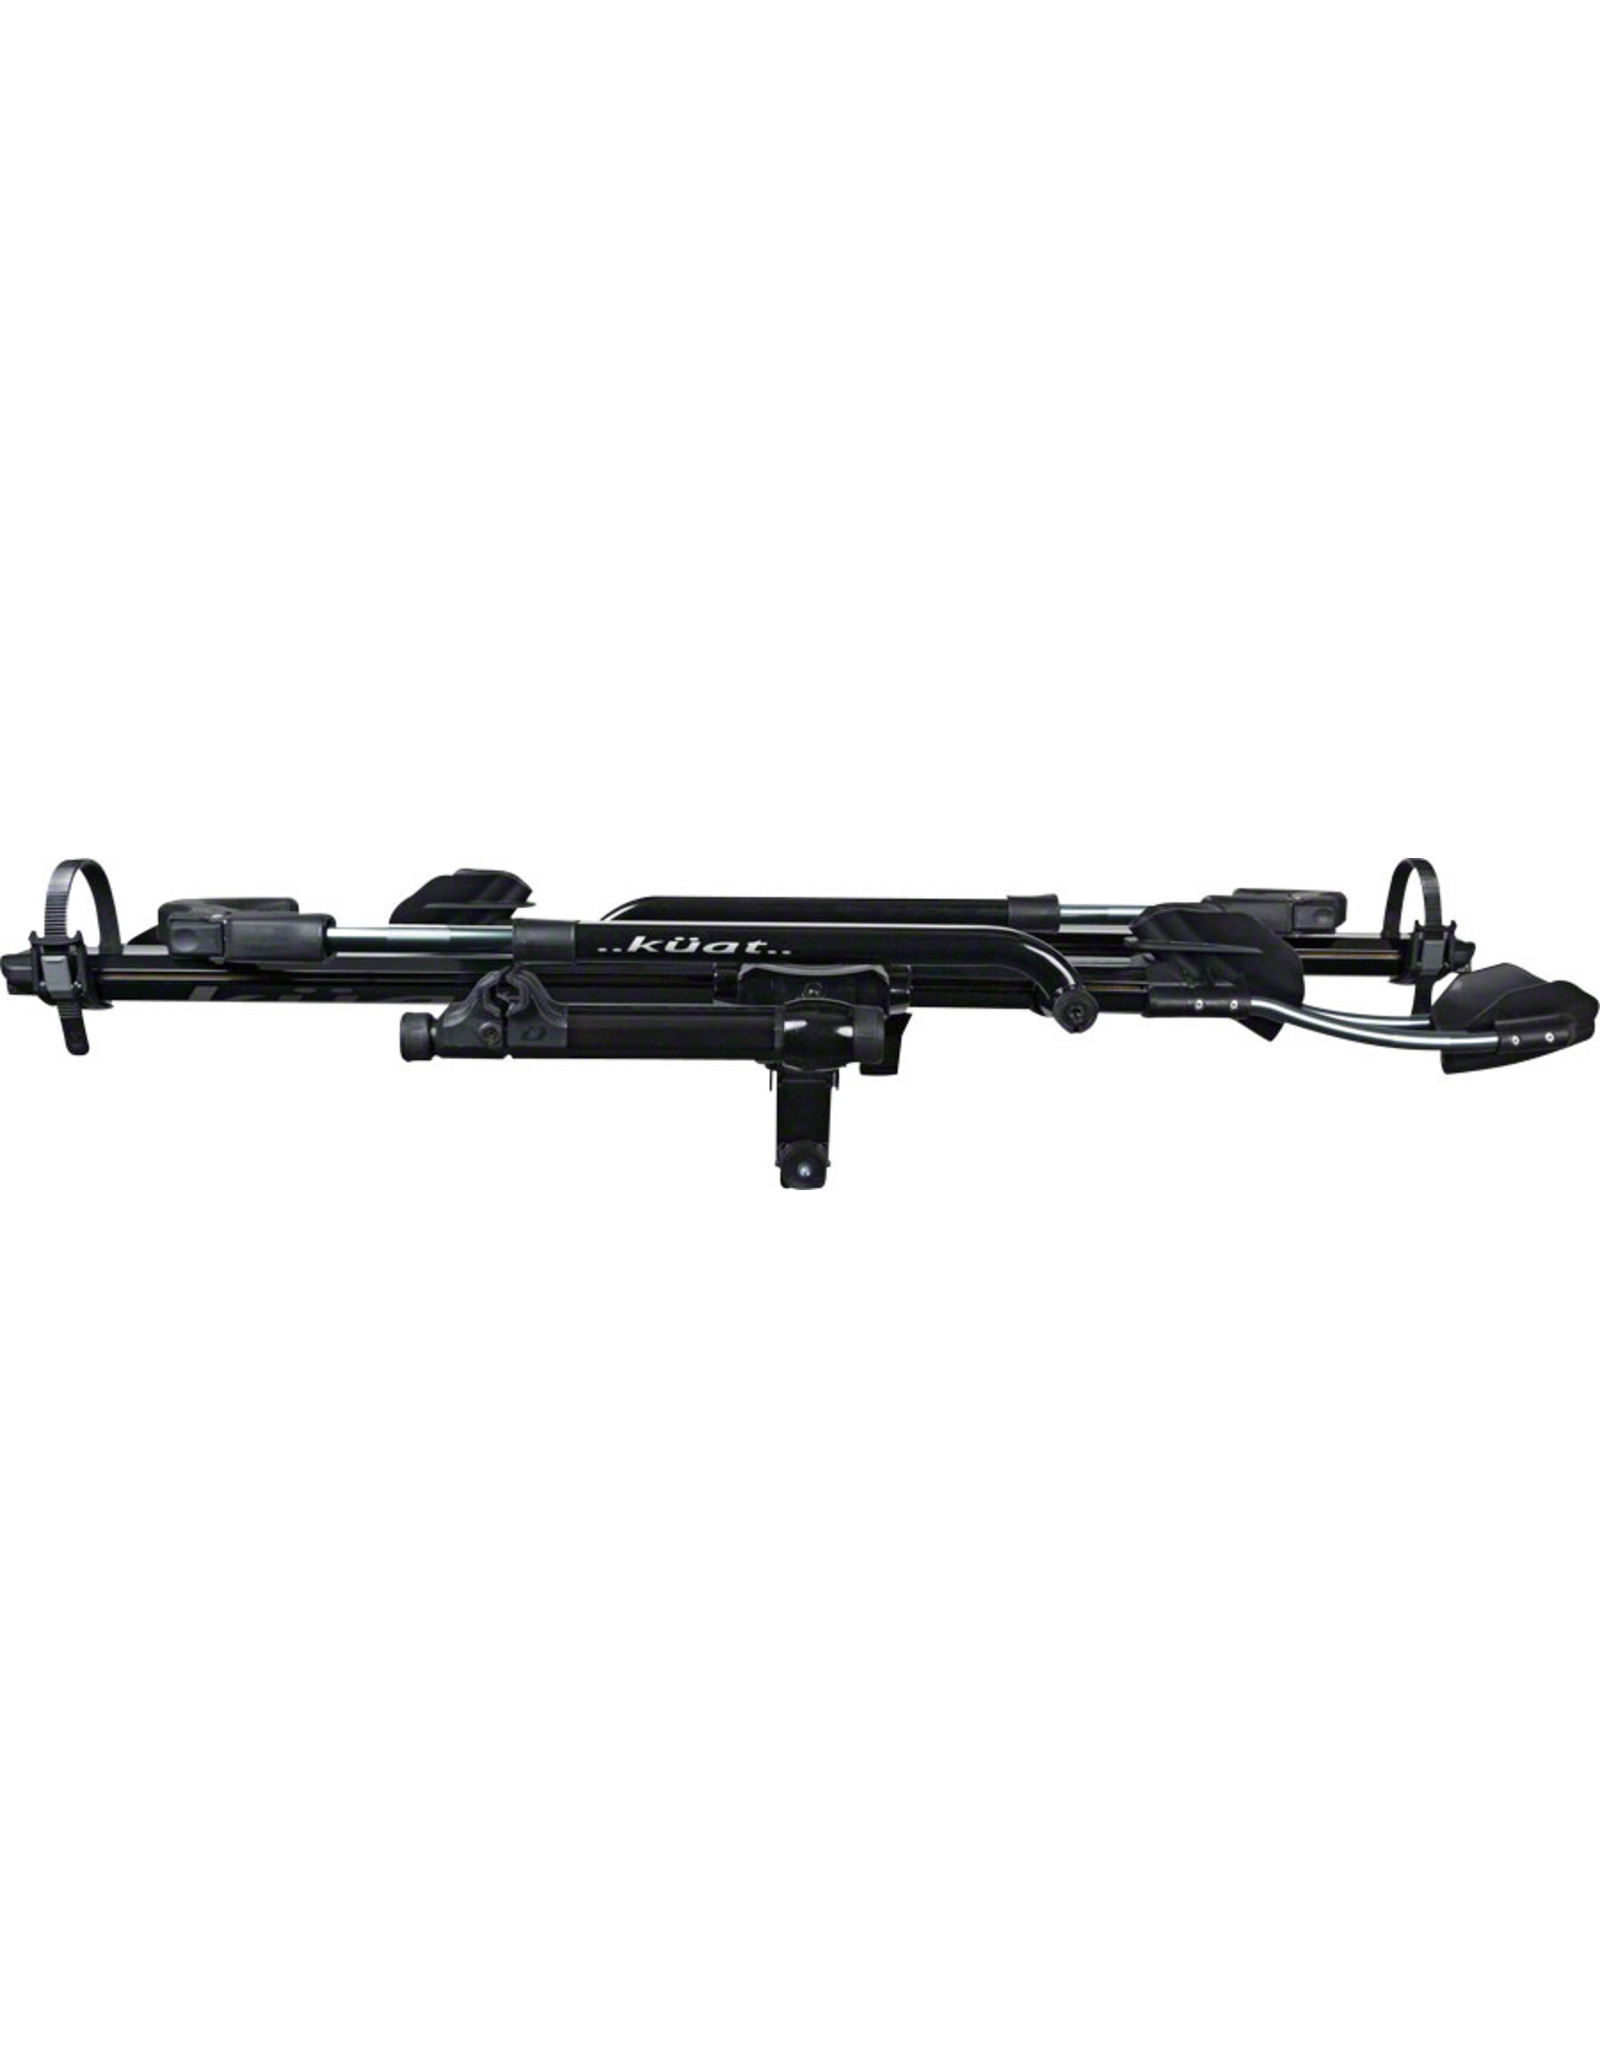 Support a velo Kuat NV 2.0 ( 2 velos ) pour attach. remorque 1 1/4